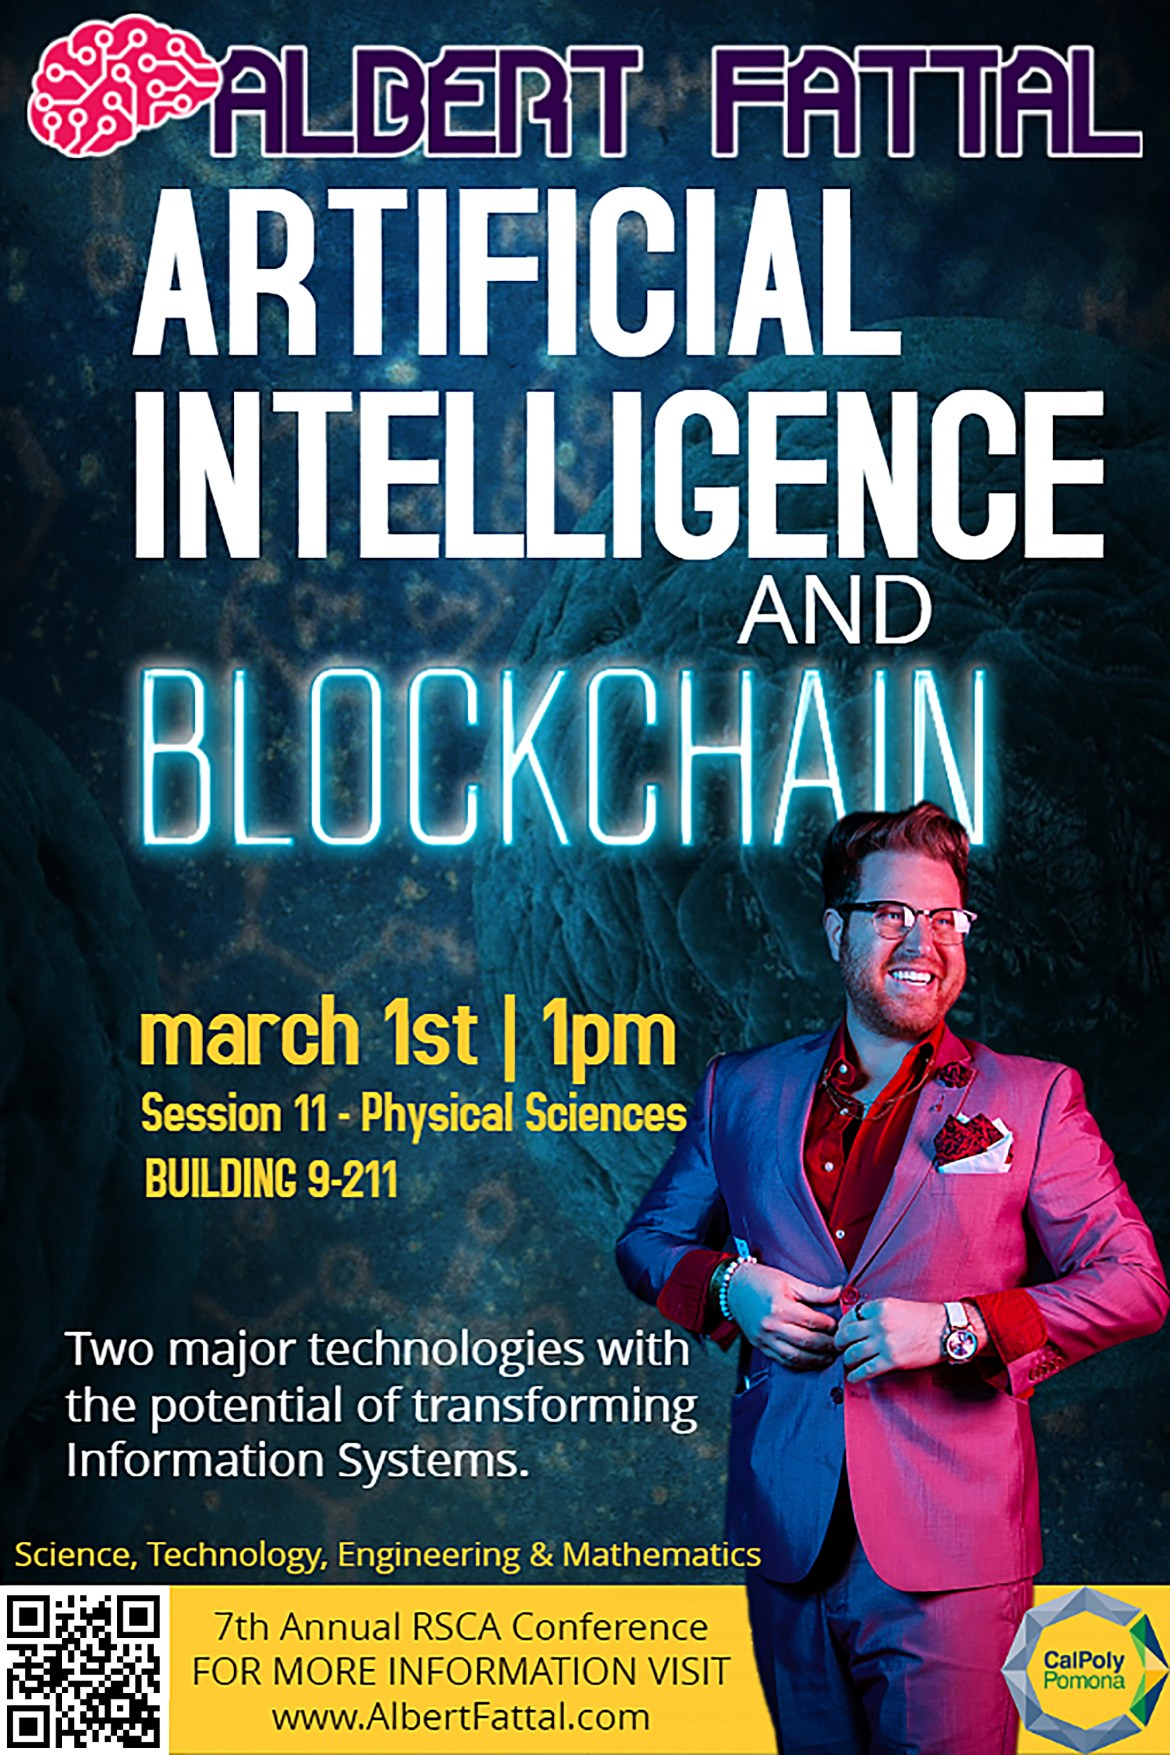 Albert Fattal Artificial Intelligence Blockchain Information Systems